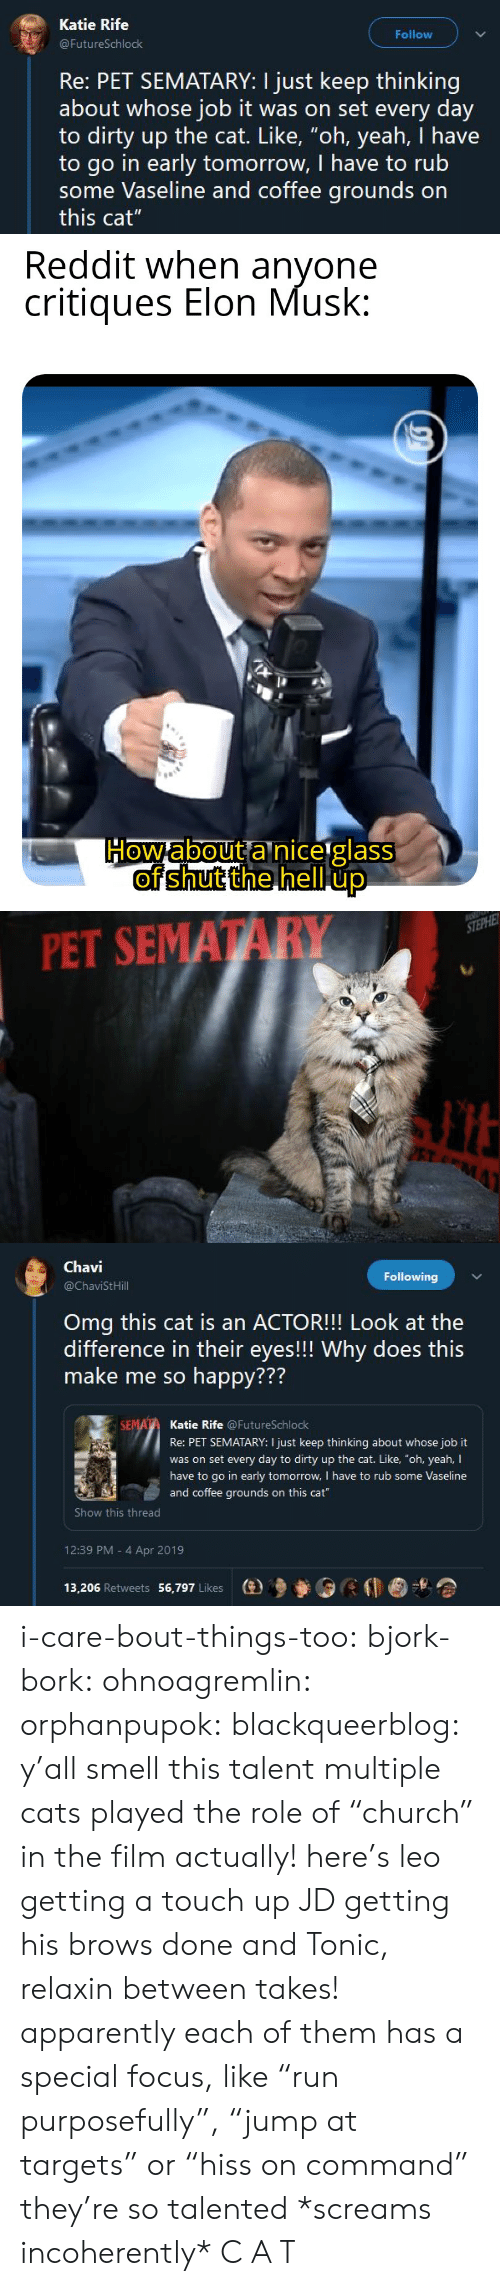 "Apparently, Cats, and Omg: Katie Rife  Follow  FutureSchlock  Re: PET SEMATARY: I just keep thinking  about whose job it was on set every day  to dirty up the cat. Like, ""oh, yeah, I have  to go in early tomorrow, I have to rub  some Vaseline and coffee grounds on  this cat""   PET SEMATARY   Chavi  @ChaviStHill  Following  Omg this cat is an ACTOR!!! Look at the  difference in their eyes!!! Why does this  make me so happy???  772  Katie Rife @FutureSchlock  Re: PET SEMATARY: I just keep thinking about whose job it  was on set every day to dirty up the cat. Like, ""oh, yeah, I  have to go in early tomorrow, I have to rub some Vaseline  and coffee grounds on this cat  Show this thread  12:39 PM - 4 Apr 2019  13,206 Retweets 56,797 Likes  (e)乡參0 i-care-bout-things-too:  bjork-bork:  ohnoagremlin:  orphanpupok:  blackqueerblog: y'all smell this talent  multiple cats played the role of ""church"" in the film actually! here's leo getting a touch up JD getting his brows done and Tonic, relaxin between takes!   apparently each of them has a special focus, like ""run purposefully"", ""jump at targets"" or ""hiss on command"" they're so talented     *screams incoherently* C A T"